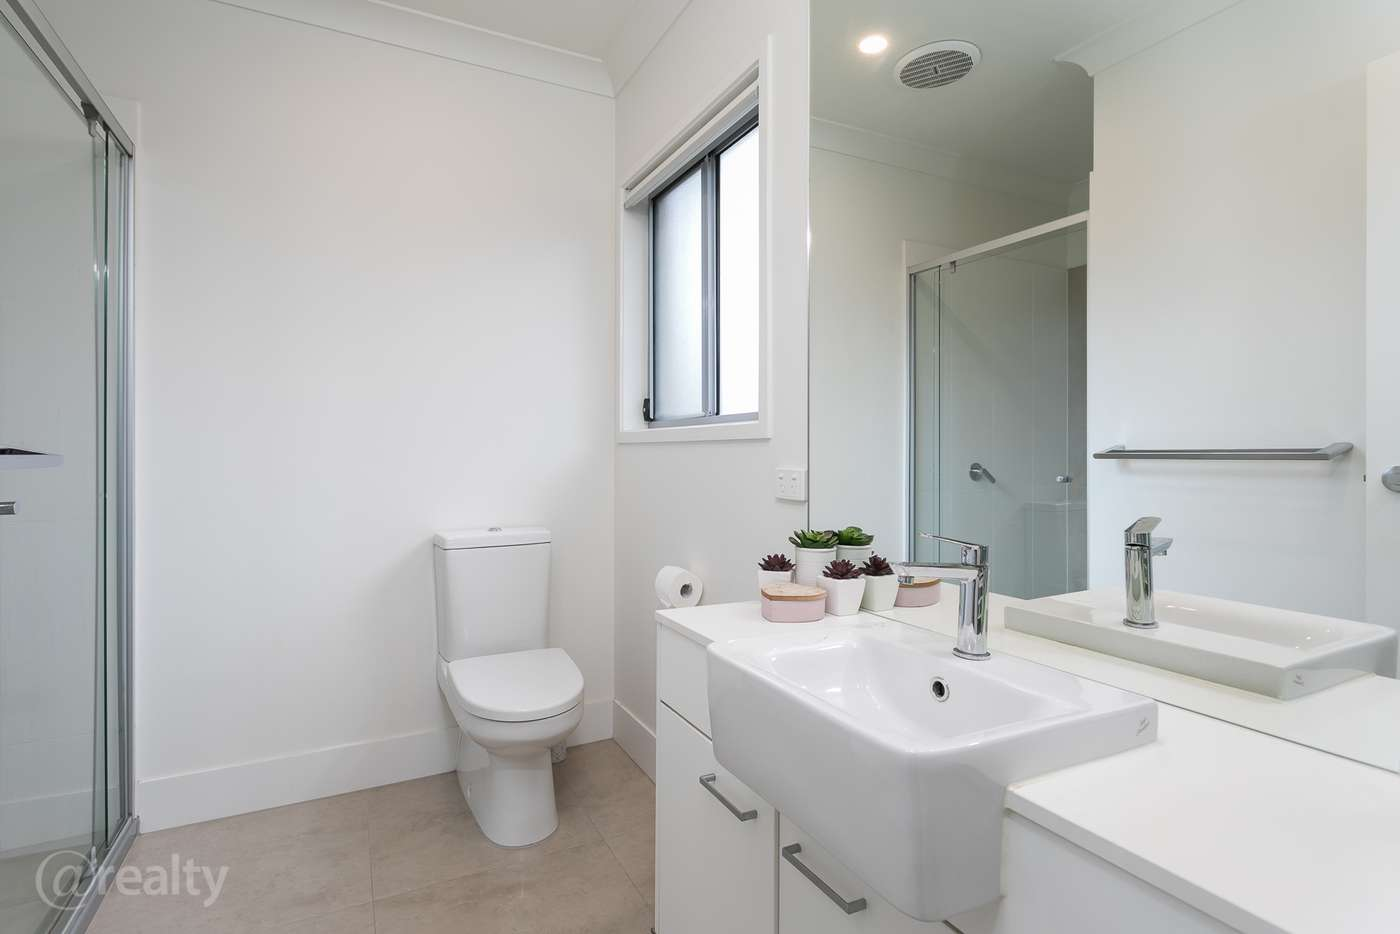 Sixth view of Homely house listing, 39 Unwin Rd North, Redland Bay QLD 4165